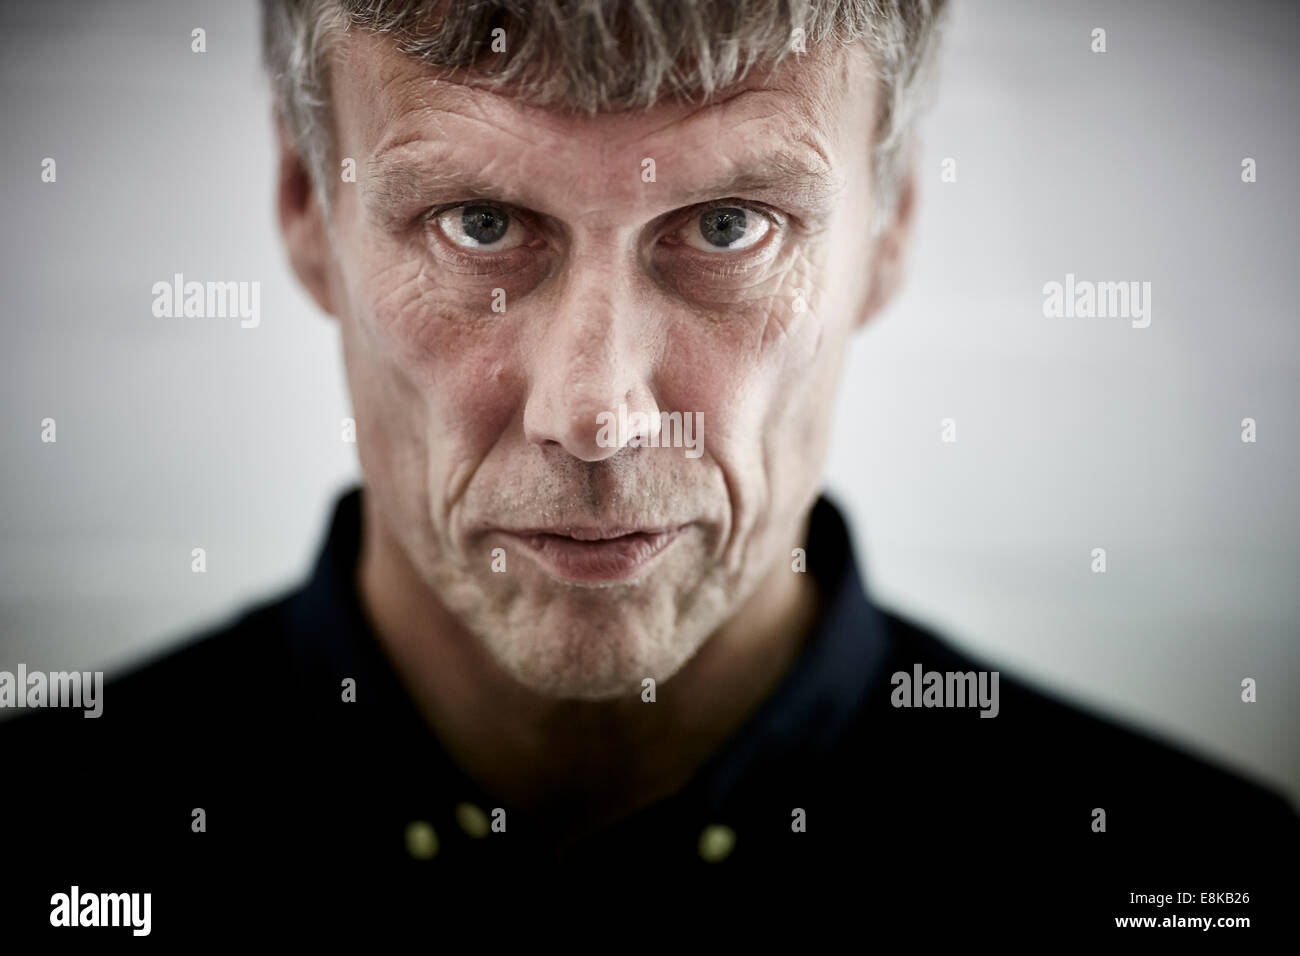 Happy Mondays dancer Bez (Mark Berry) has his head 3D scanned for a project that's part of Manchester Science - Stock Image